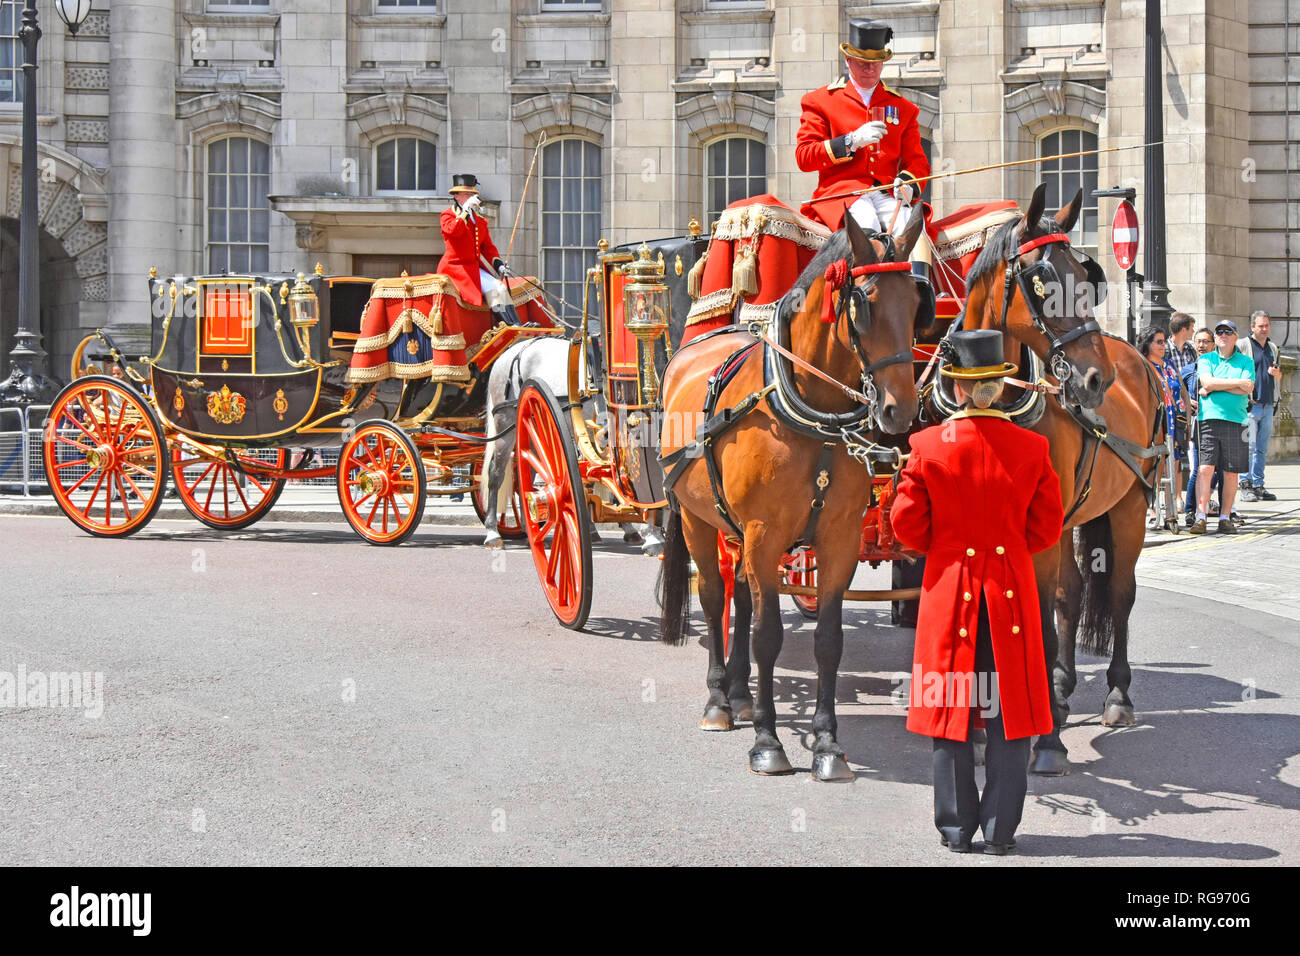 Two horse drawn State Landaus carriages wait at Admiralty Arch with coachman & footman taking refreshments on hot summers day London street scene UK - Stock Image